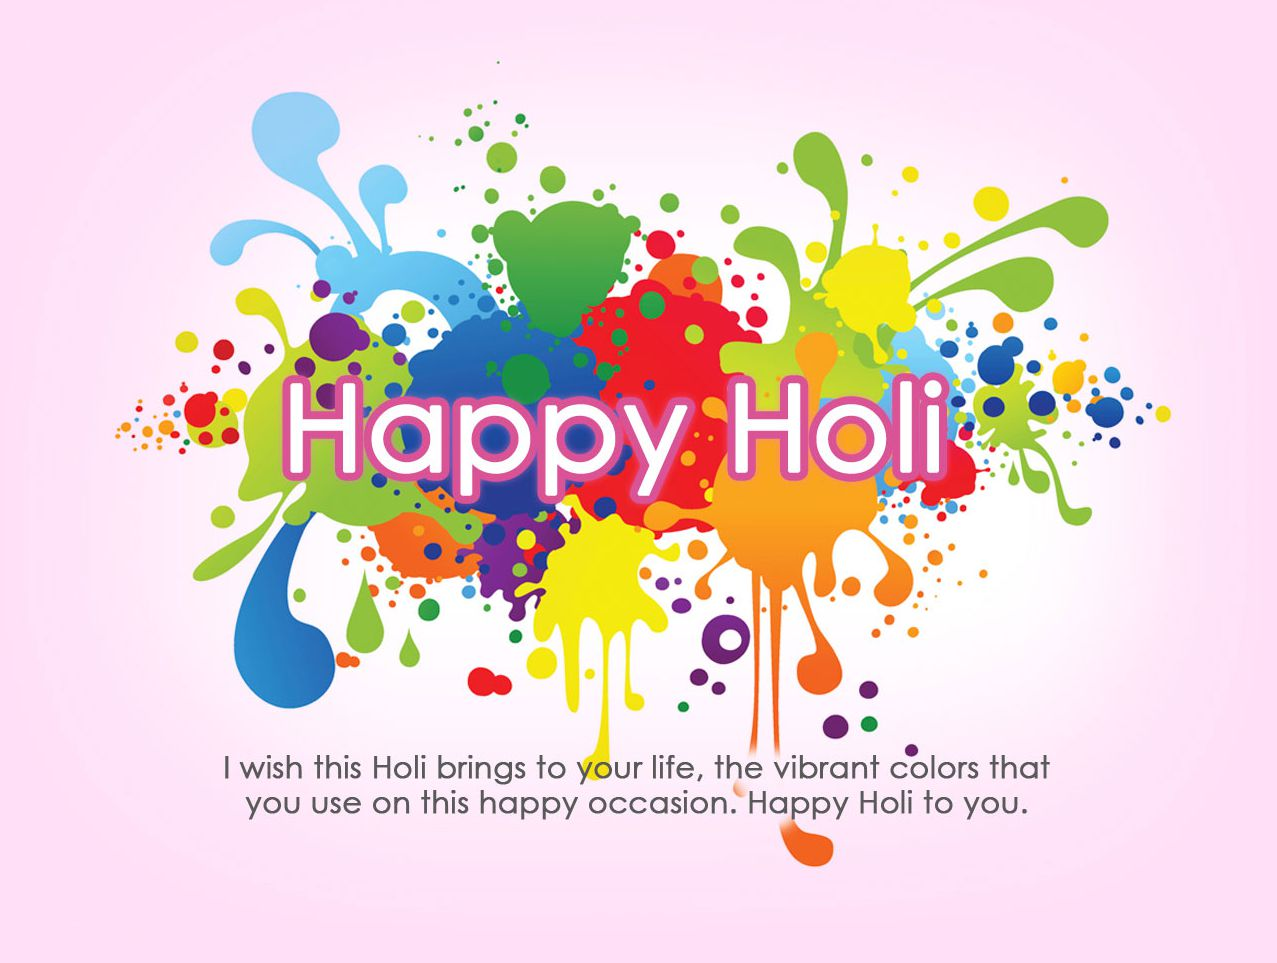 Happy holi images hd in hindi wallpapers photos pictures holi greeting hd image m4hsunfo